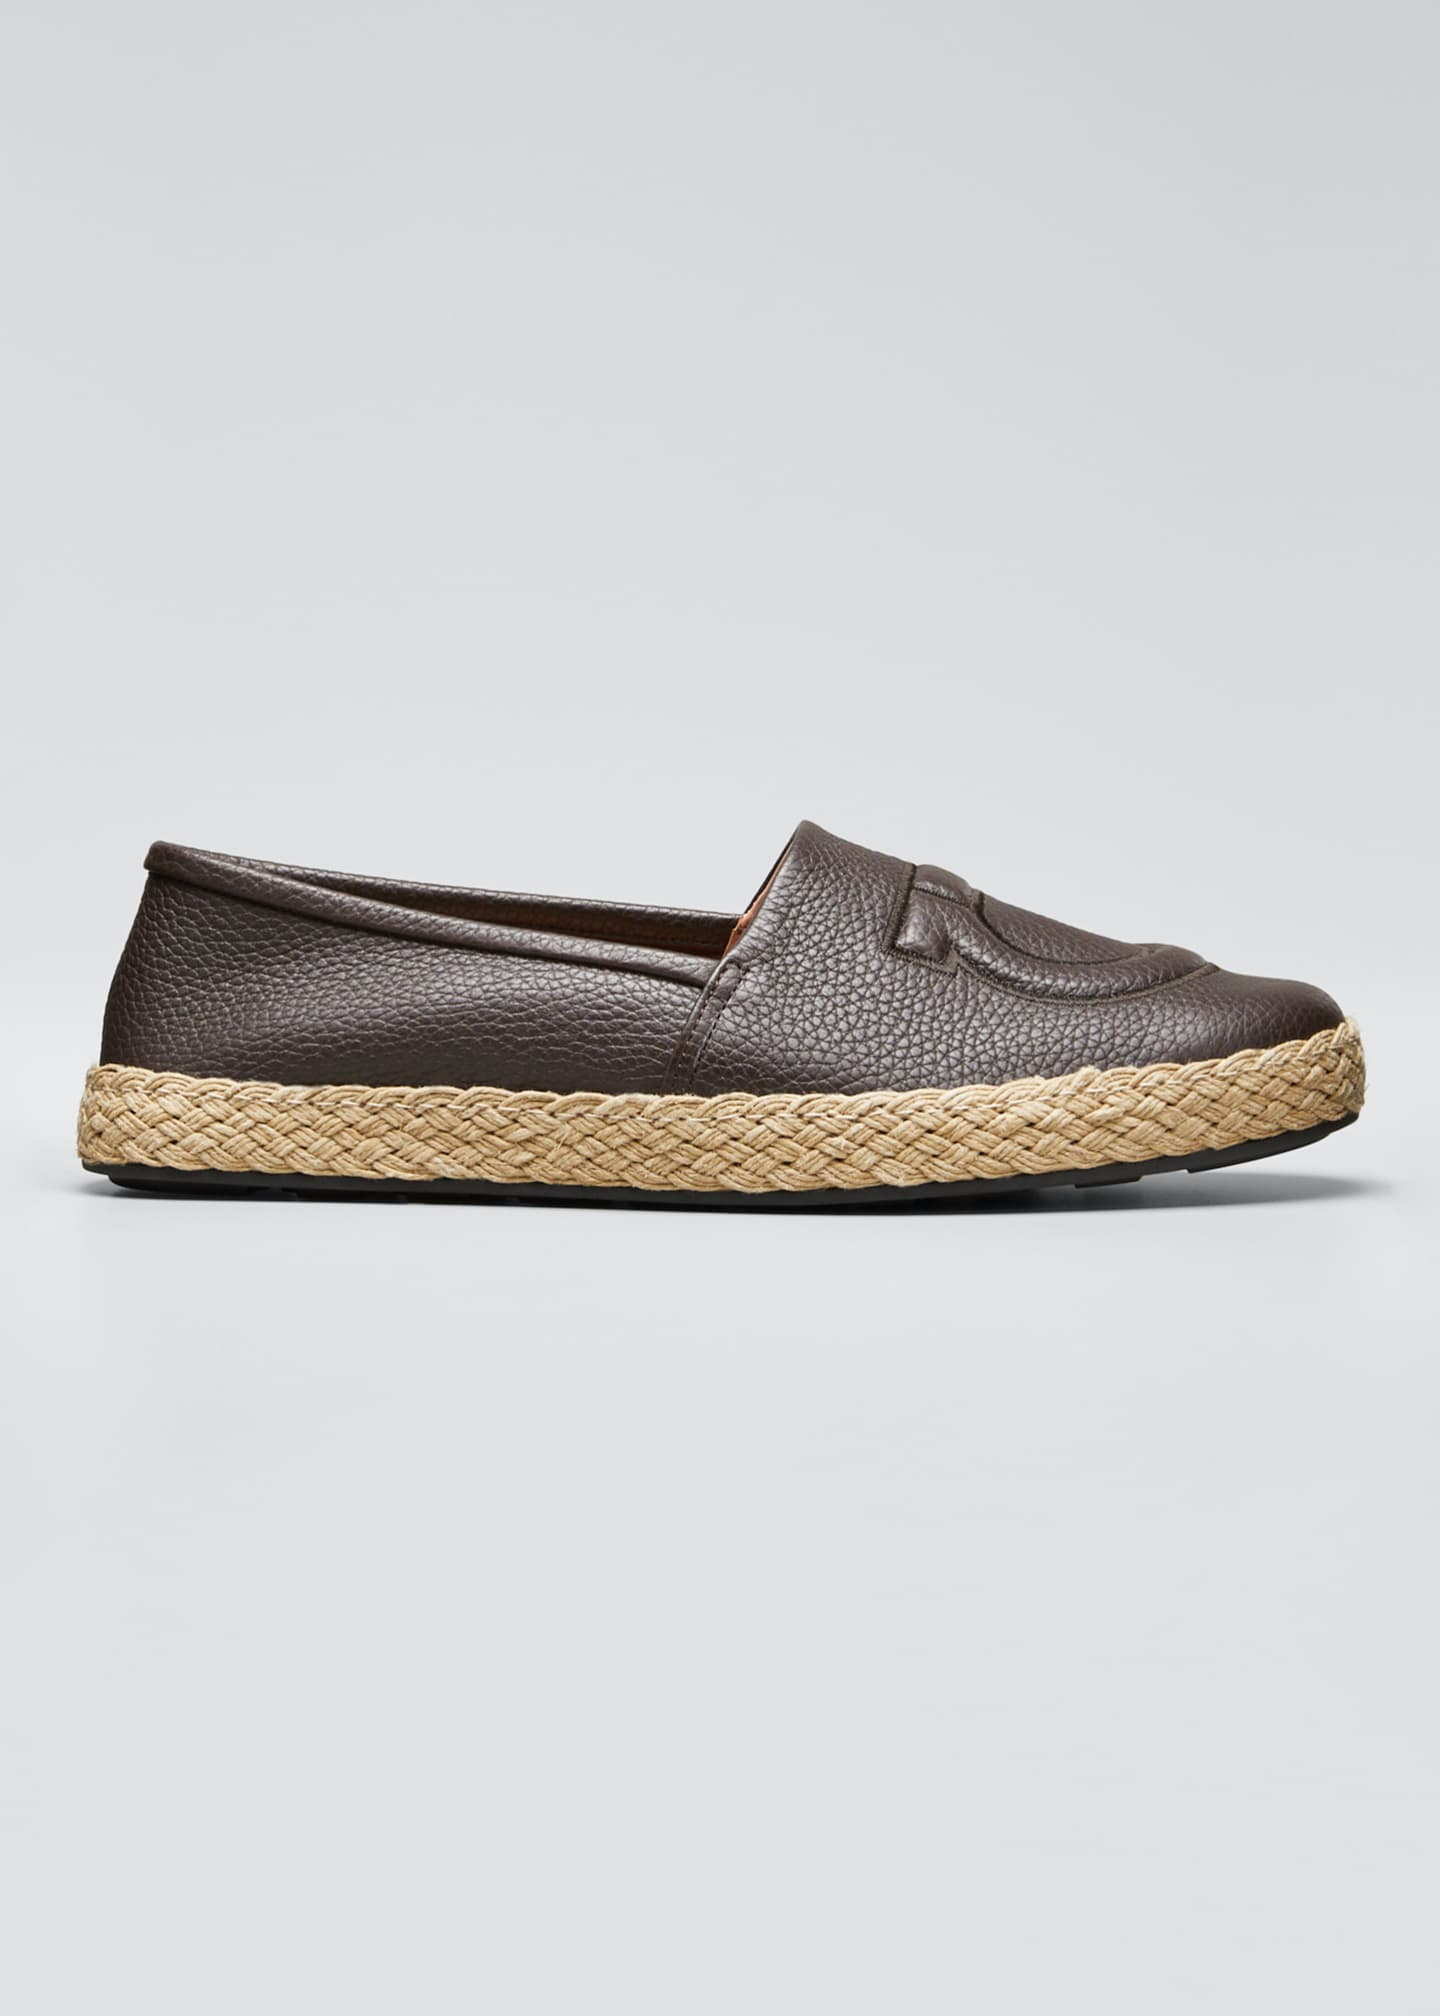 Men's Summer Gancio Leather Espadrilles